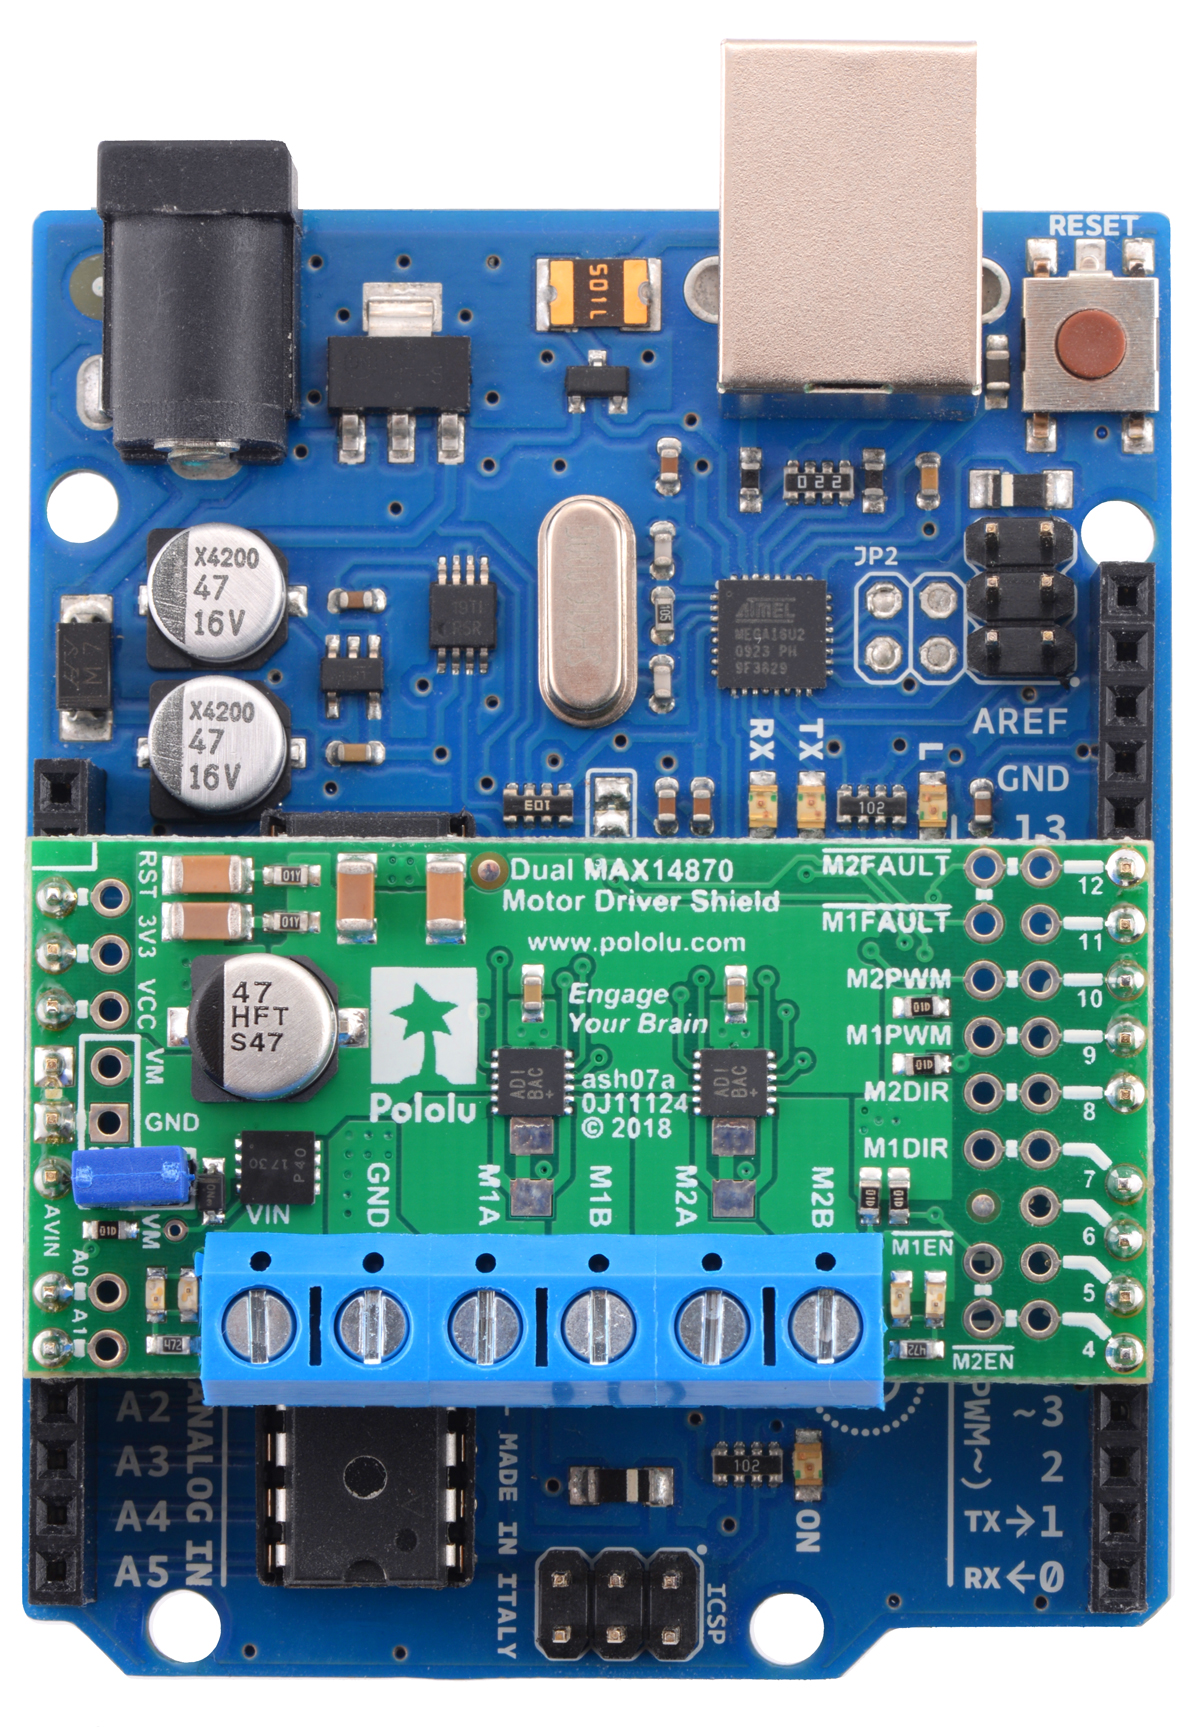 Pololu Dual Max14870 Motor Driver Shield For Arduino The Series Pwm Controller With Forward And Reverse Above Can Uses Digital Pins 4 7 8 9 10 12 Its Control Lines Though Pin Mappings Be Customized If Defaults Are Not